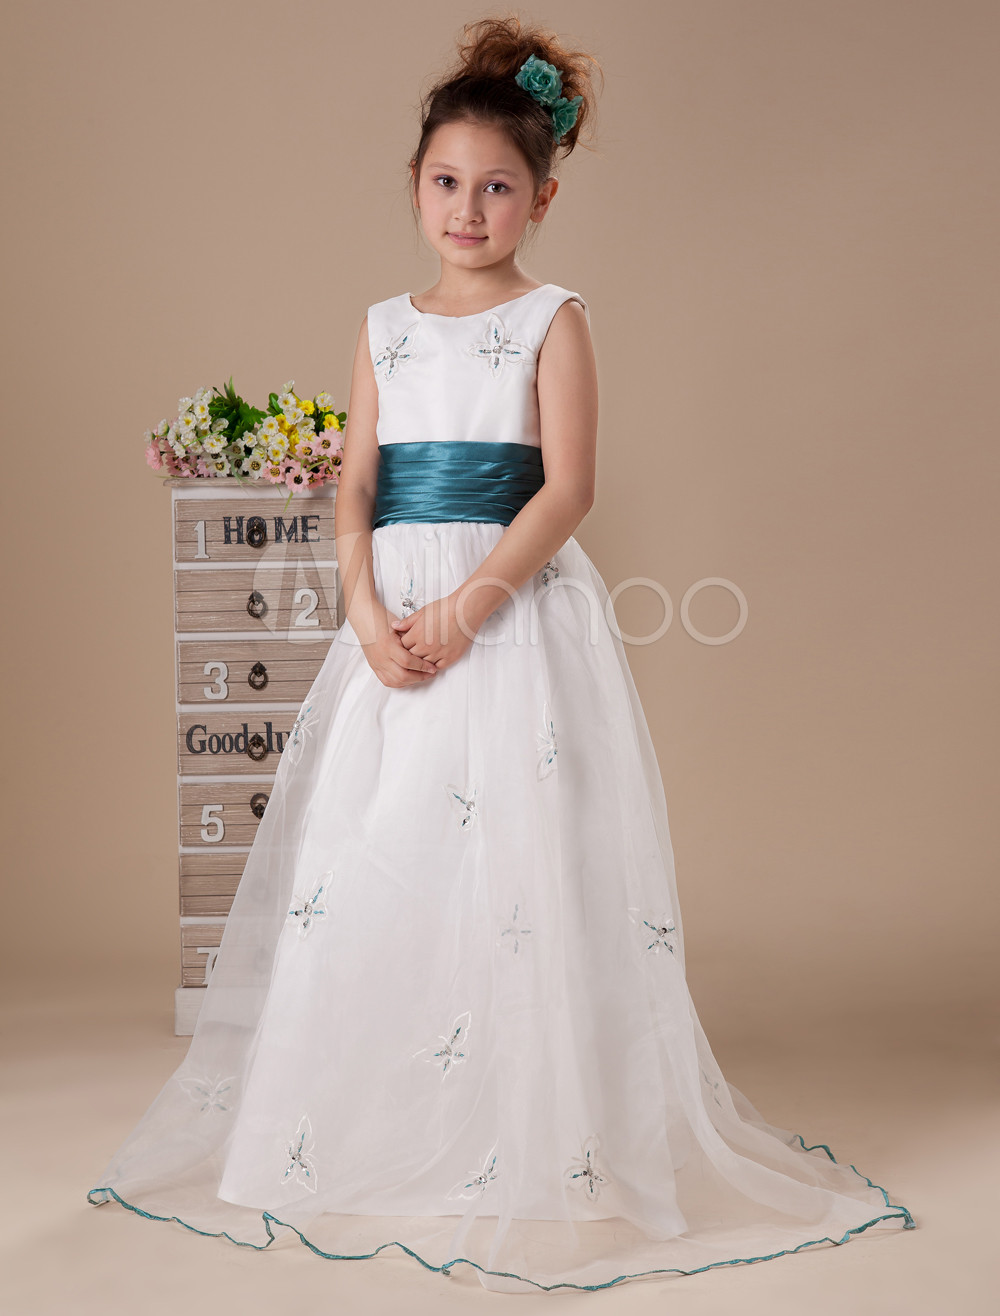 Likable White A-line Jewel Satin Floor Length Flower Girl Dress